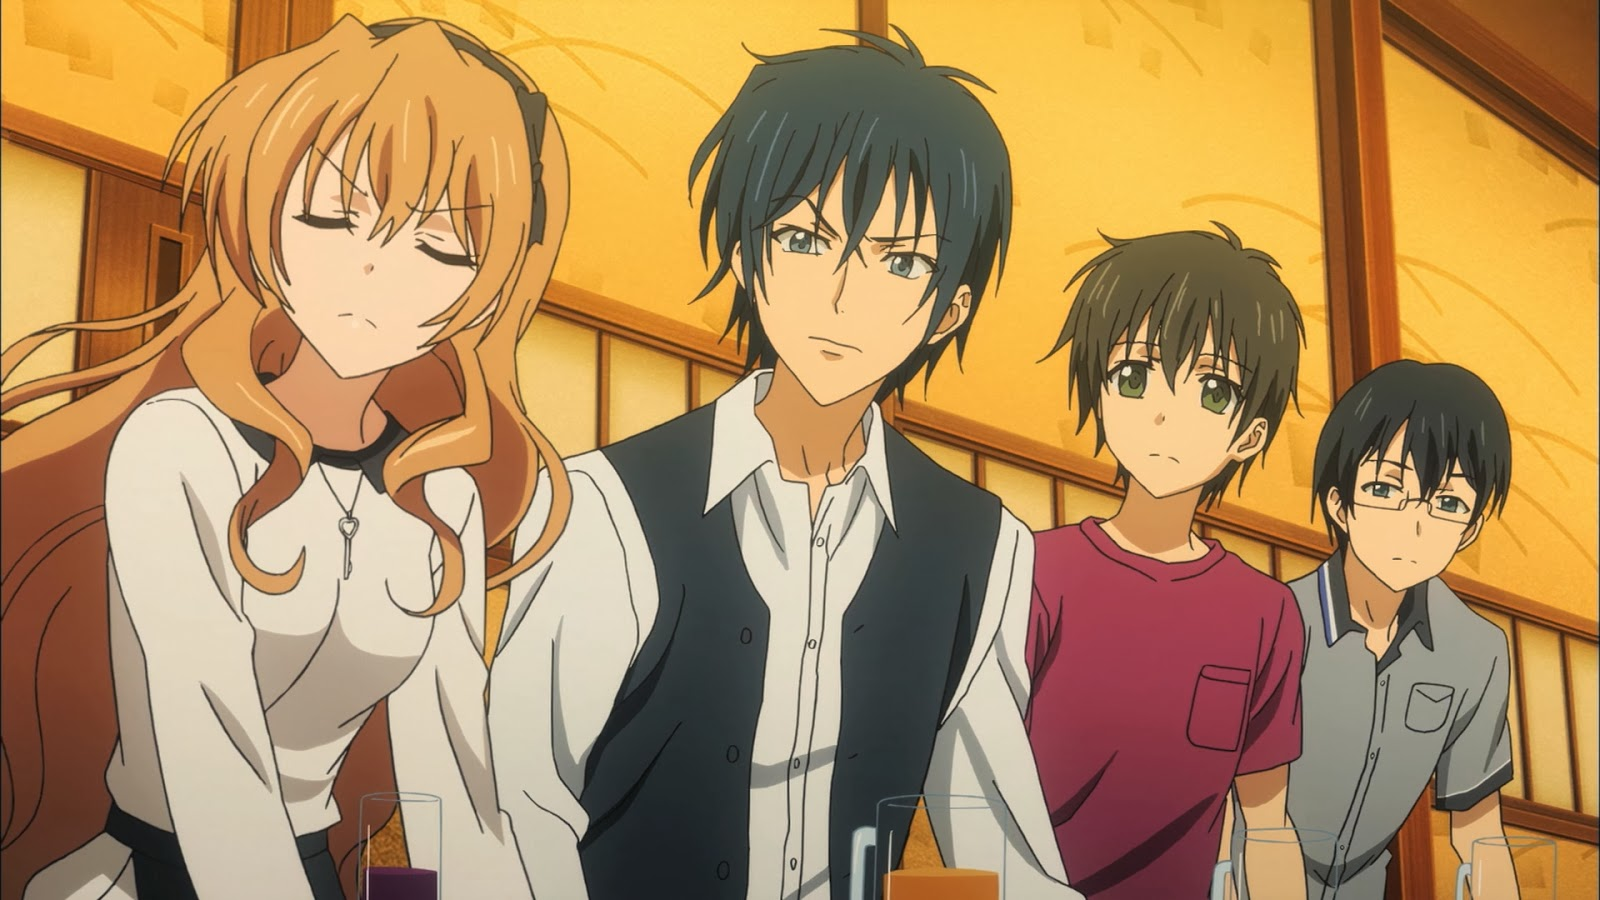 Golden time 6